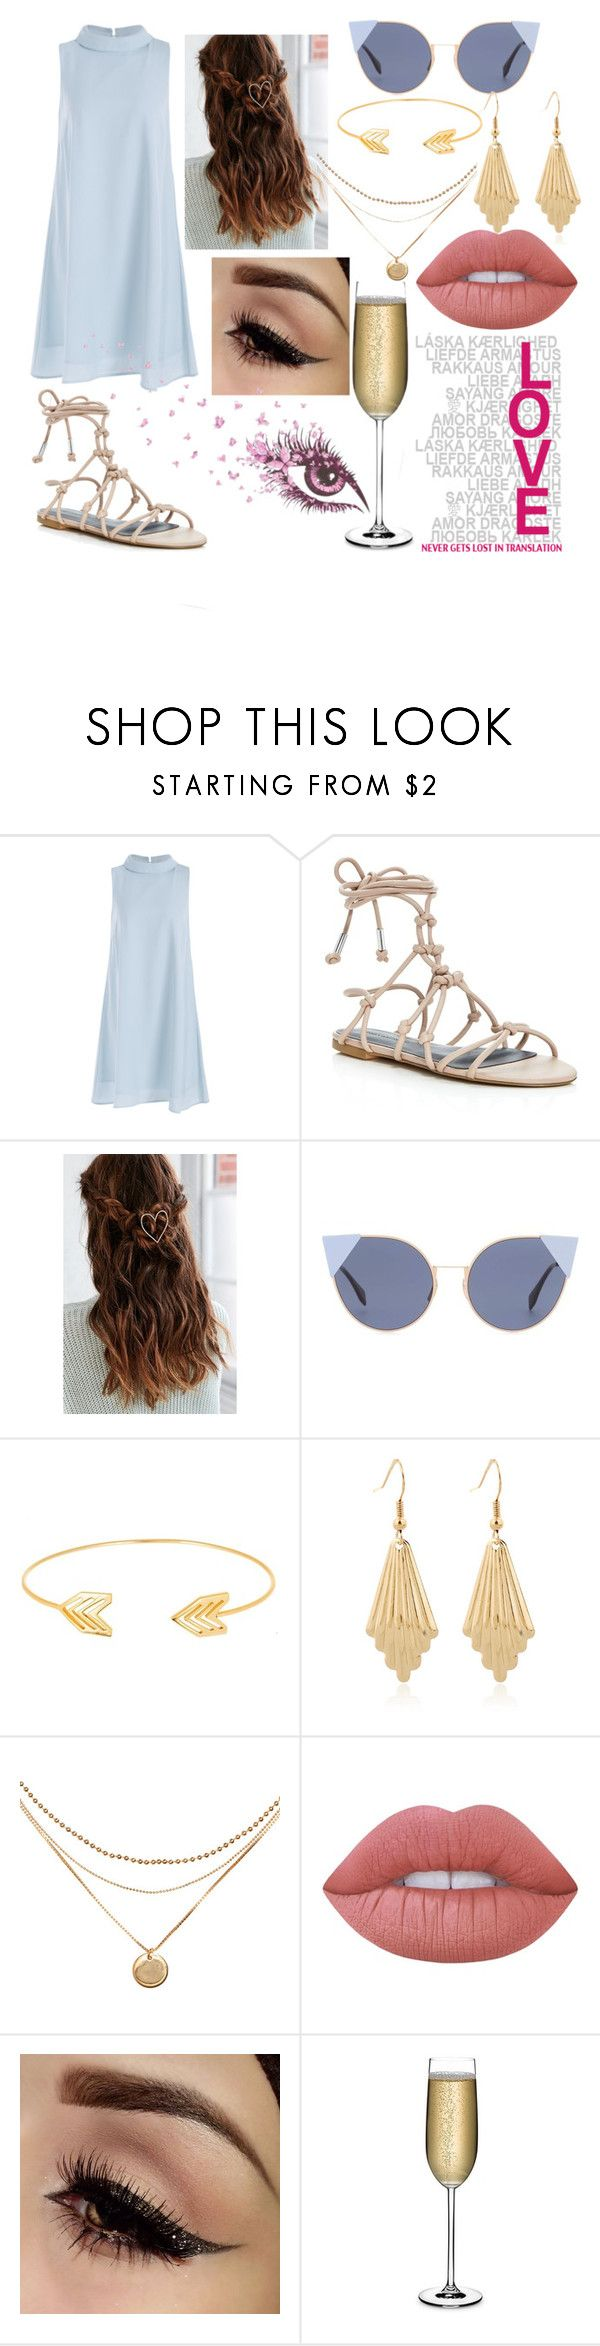 """""""Anna"""" by naleyp10smile on Polyvore featuring Rebecca Minkoff, Urban Outfitters, Fendi, Lord & Taylor, Lime Crime and Nude"""